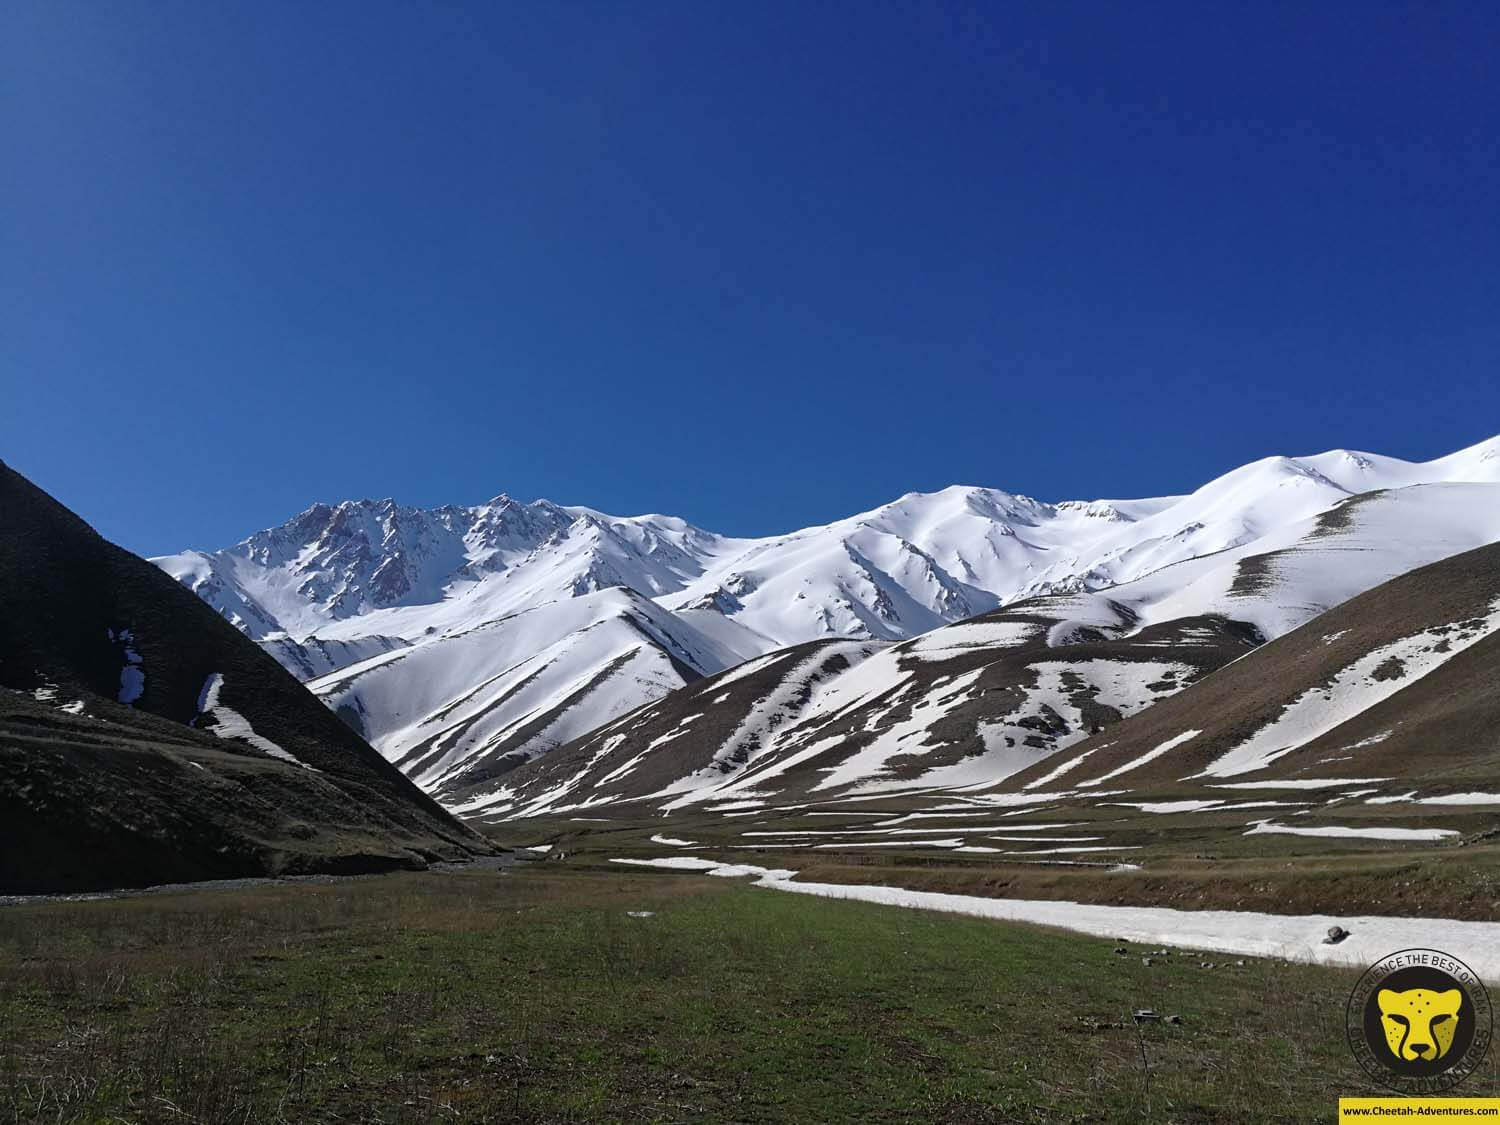 4 Walking to reach the snow field, Doberar Peak and mountain range from Lasem Village, Damavand Ski Touring